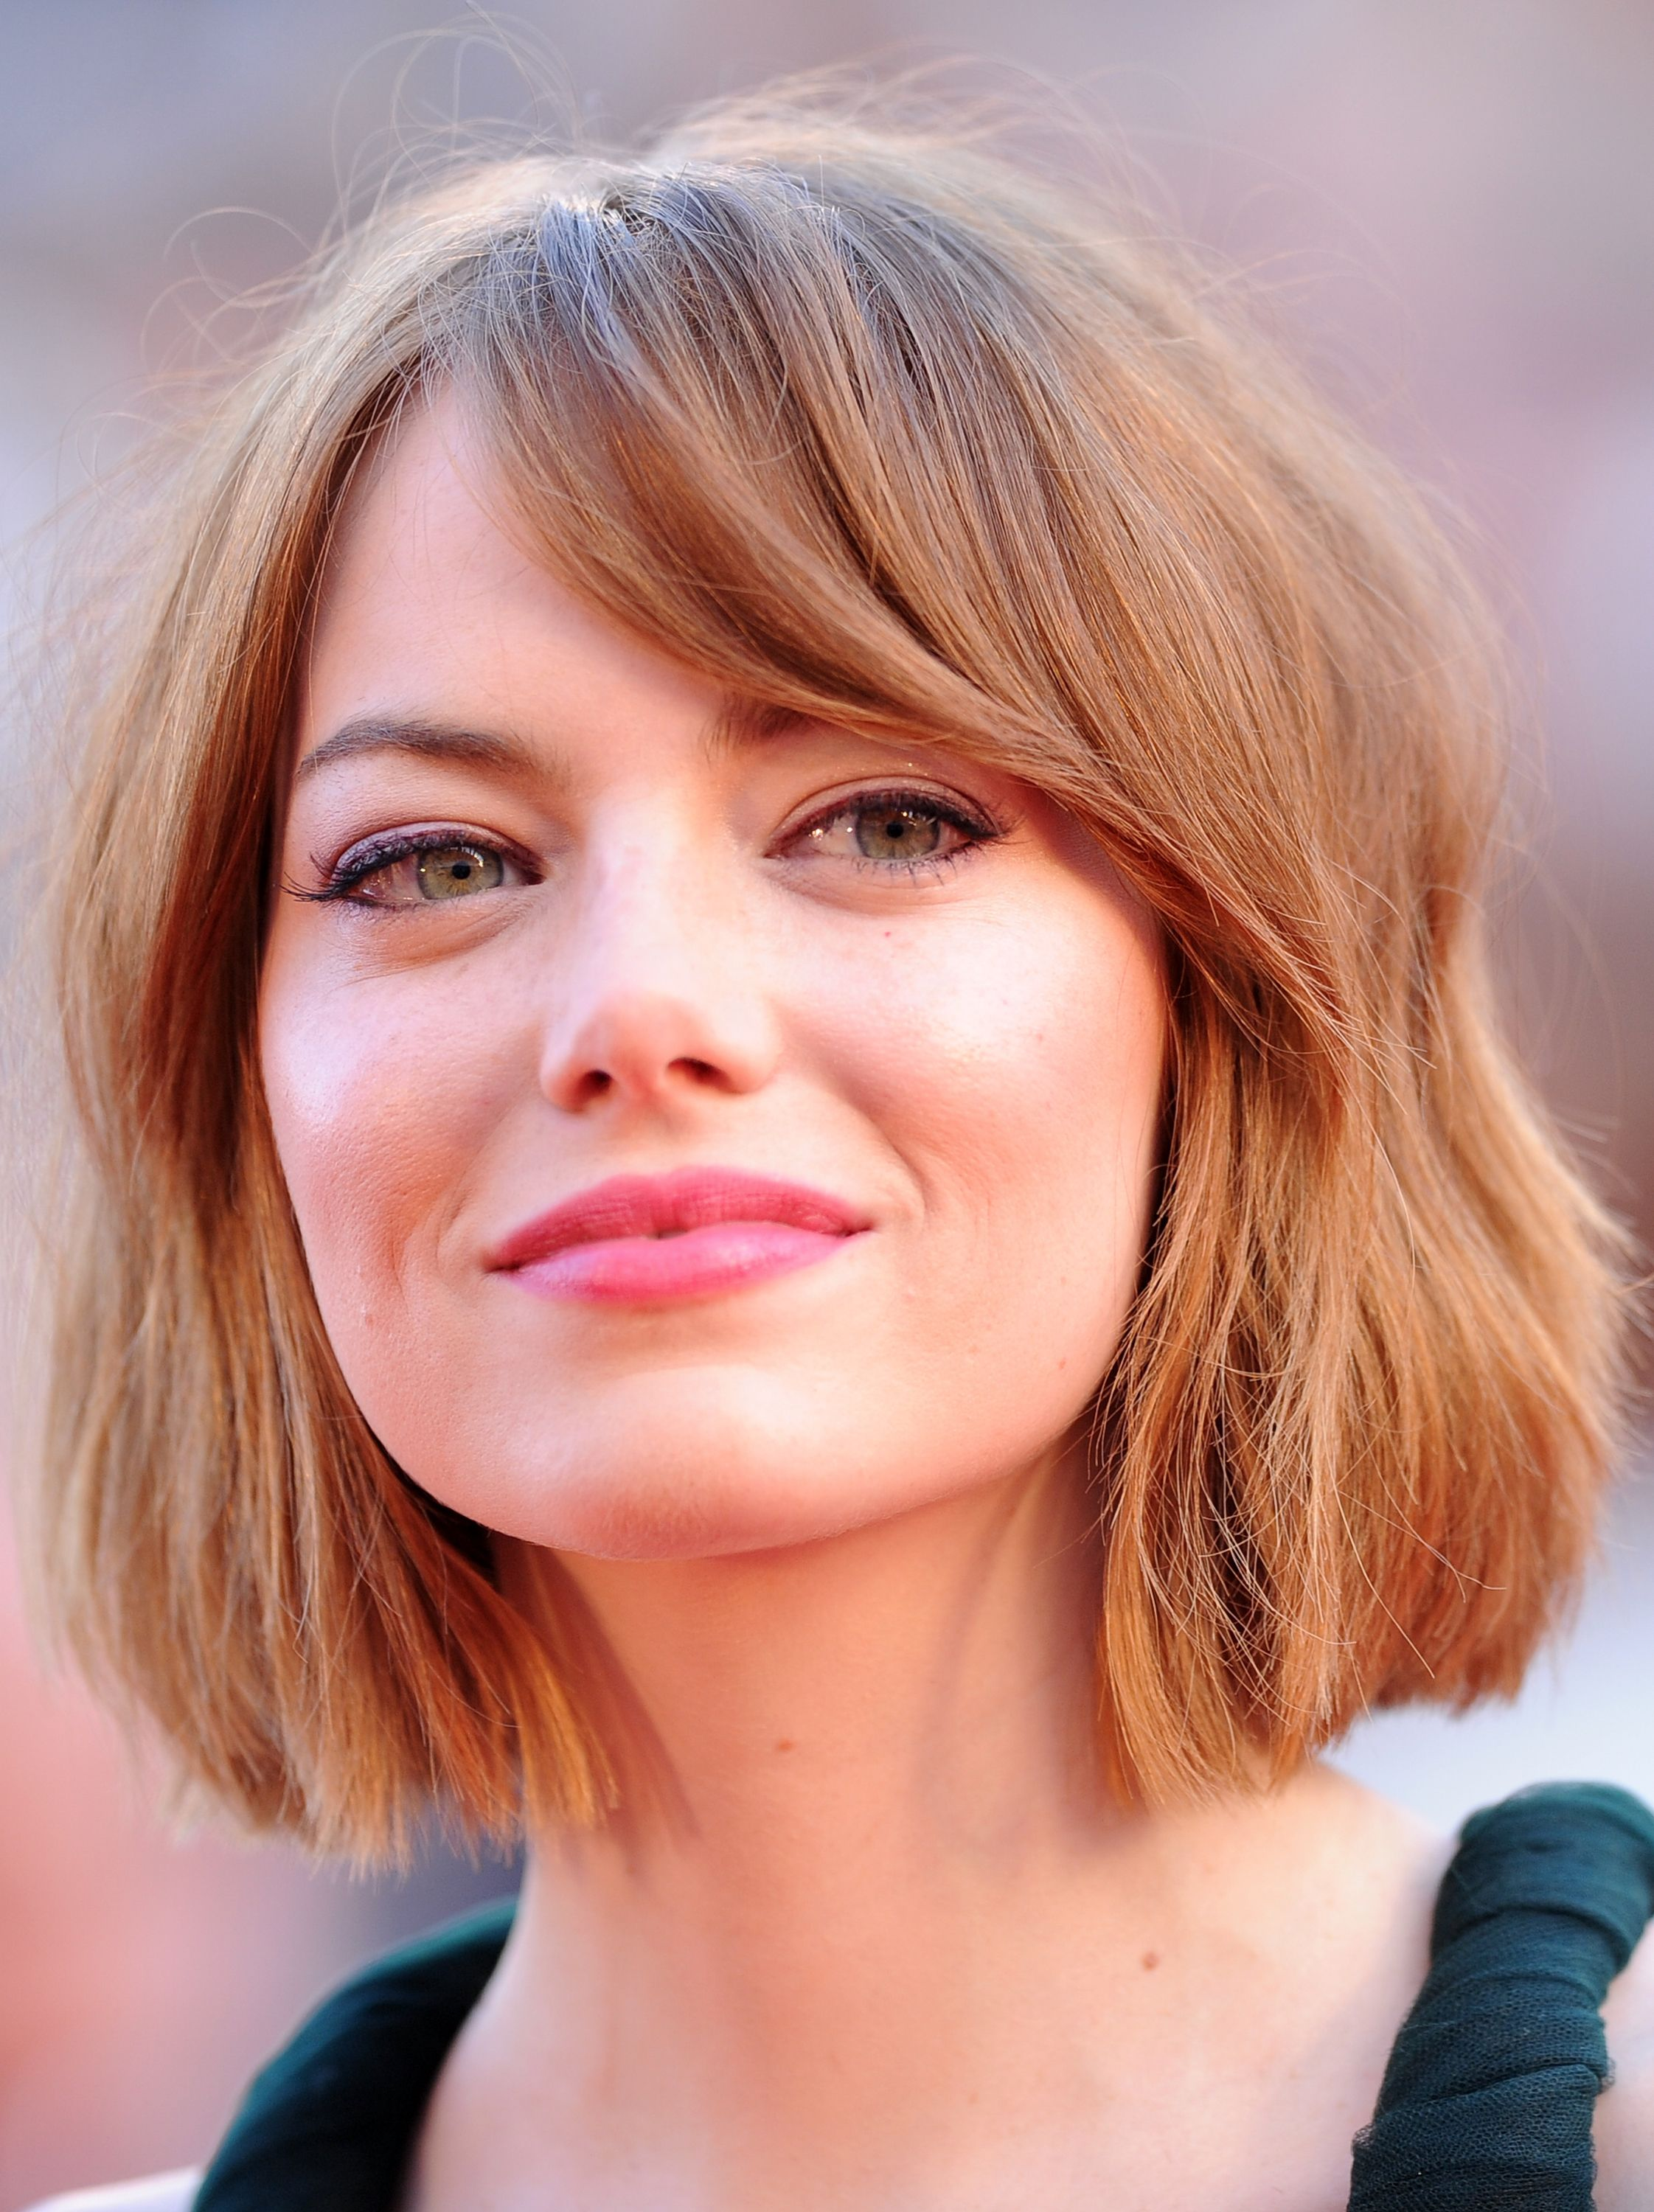 Haircuts Hairstyles Bob Hairstyles For 2019 60 Short Haircut Trends To Try Now